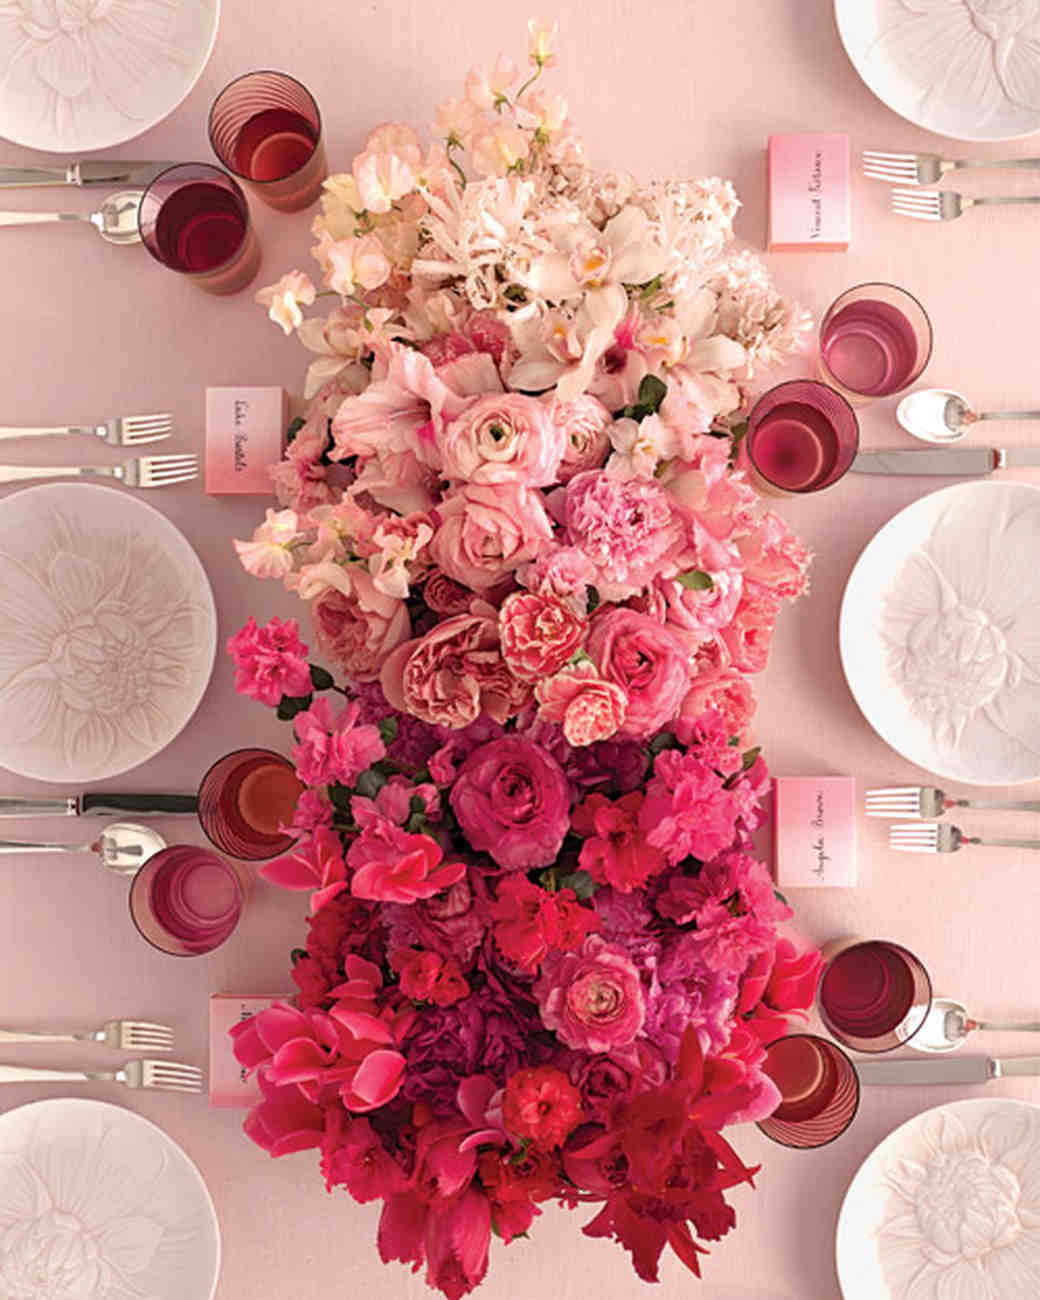 Pink Wedding Flowers: 37 Pink Wedding Centerpieces